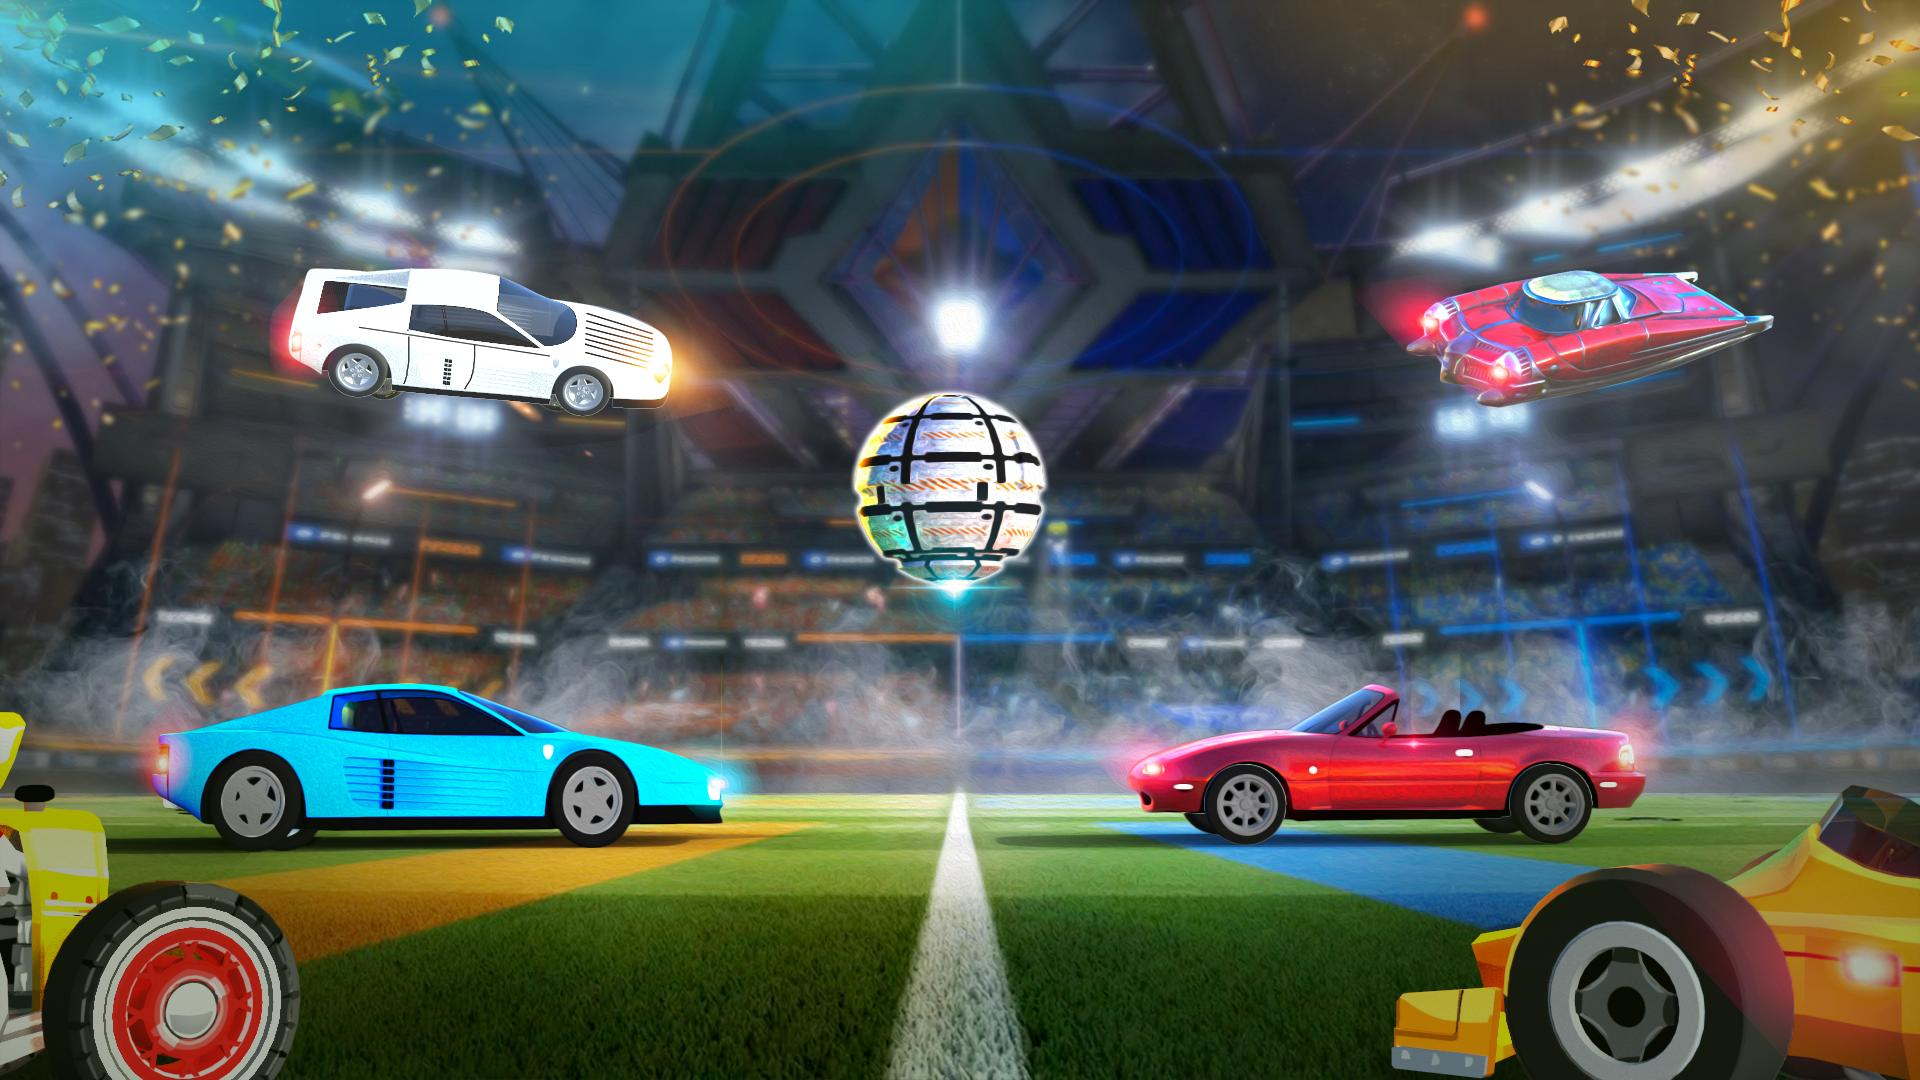 Rocket Car Soccer league - Super Football 1.7 Screenshot 8